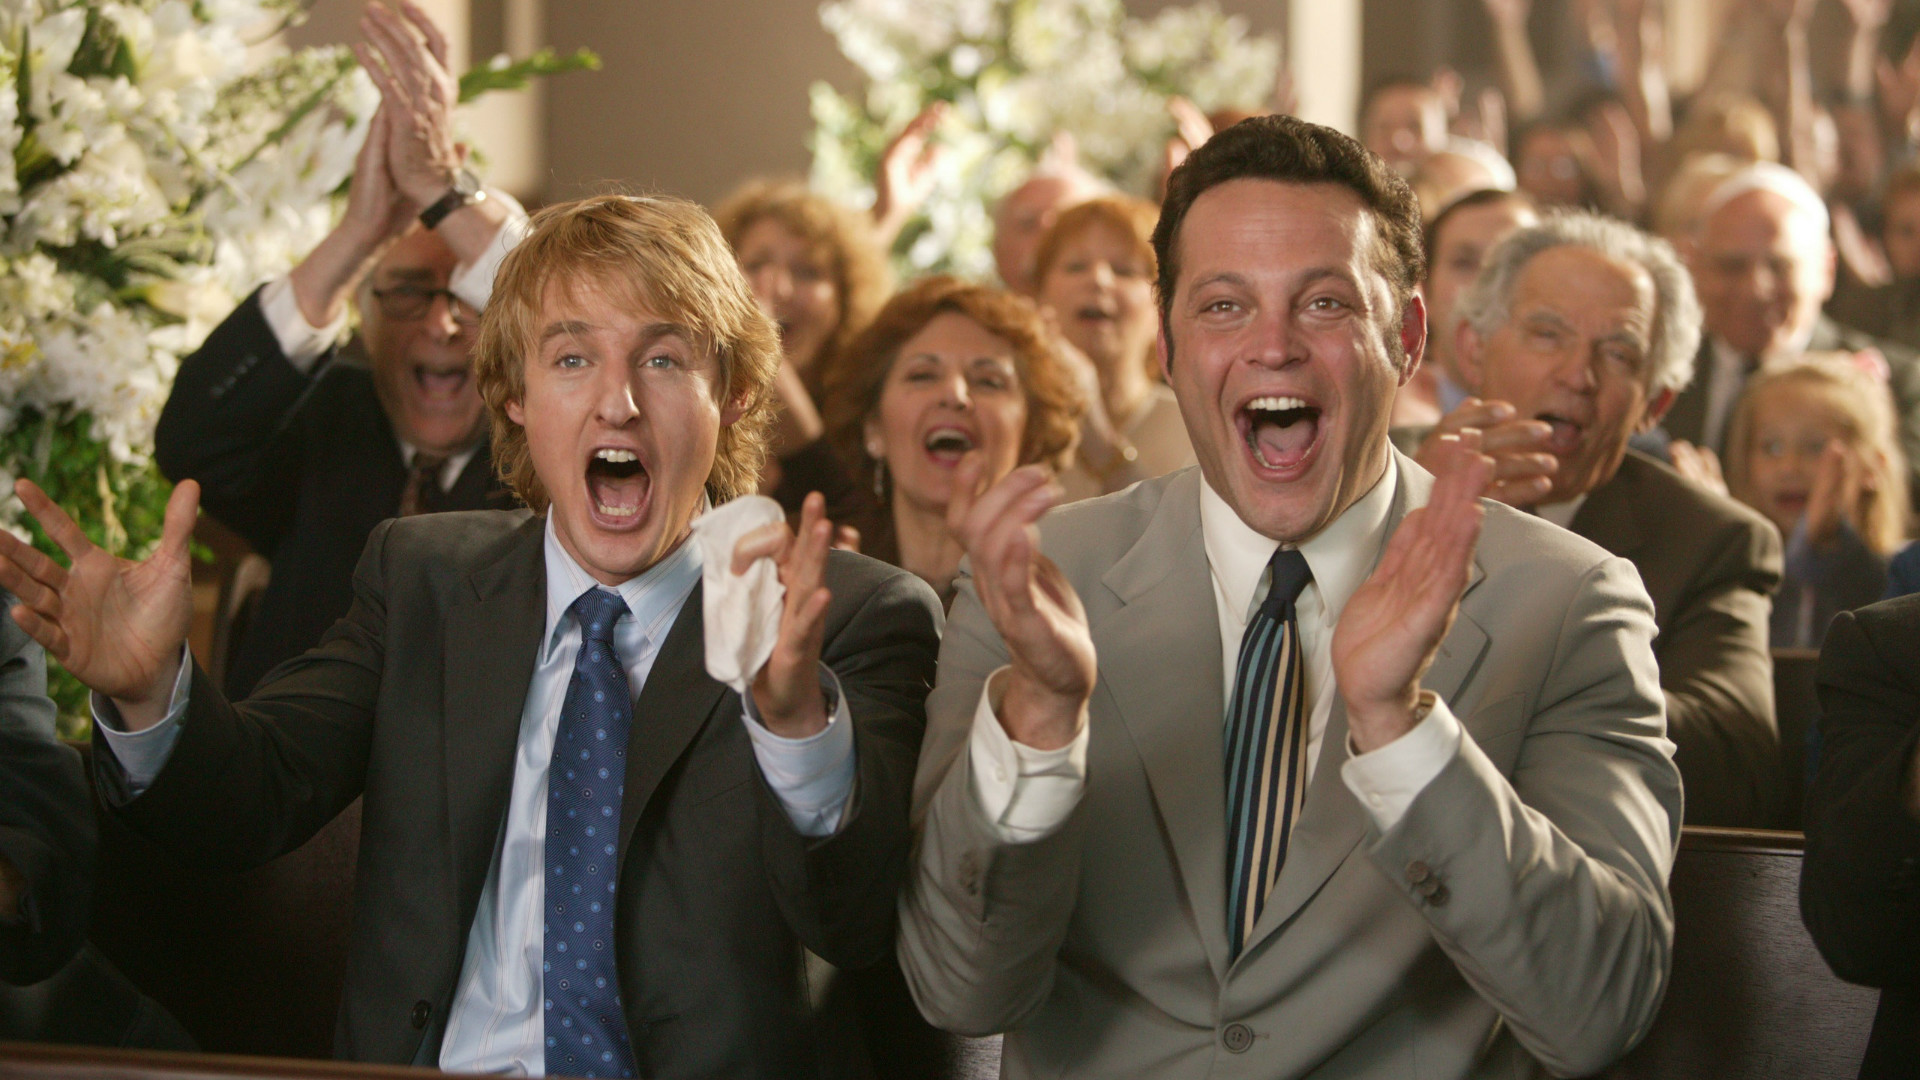 Owen Wilson and Vince Vaughn in Wedding Crashers.